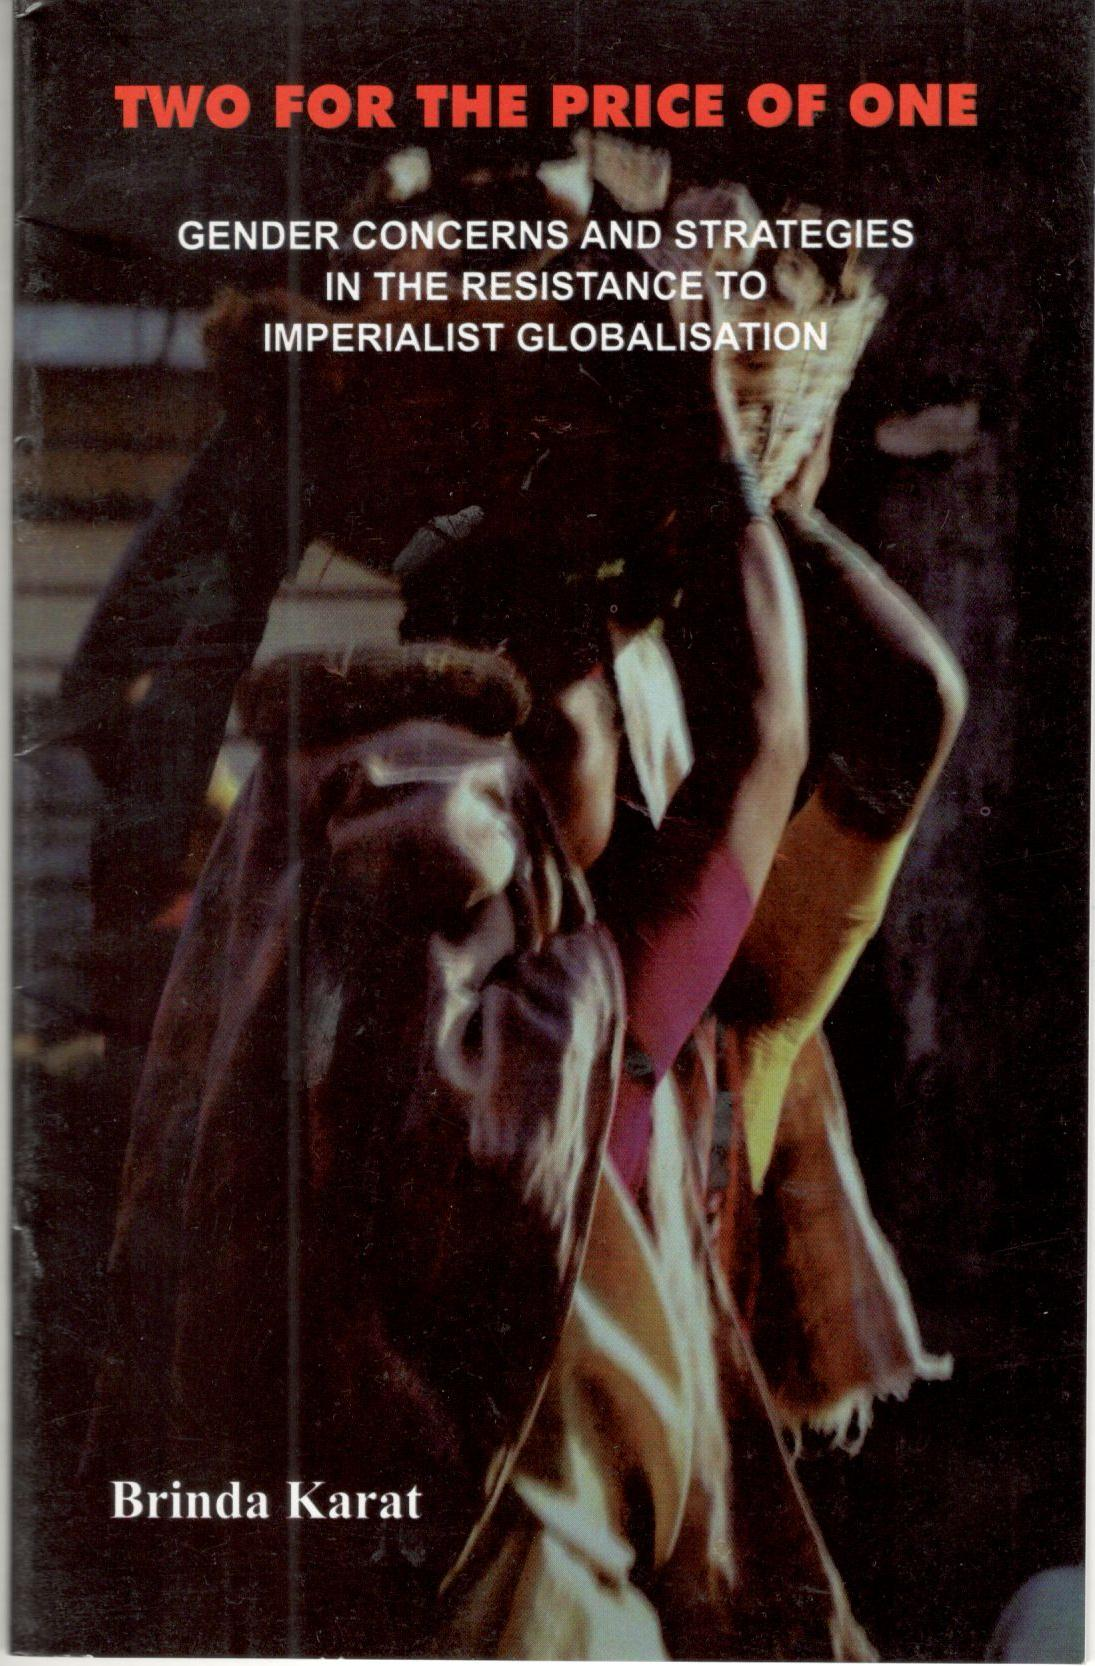 GENDER CONCERNS AND STRATEGIES IN THE RESISTANCE TO IMPERIALIST GLOBALISATION